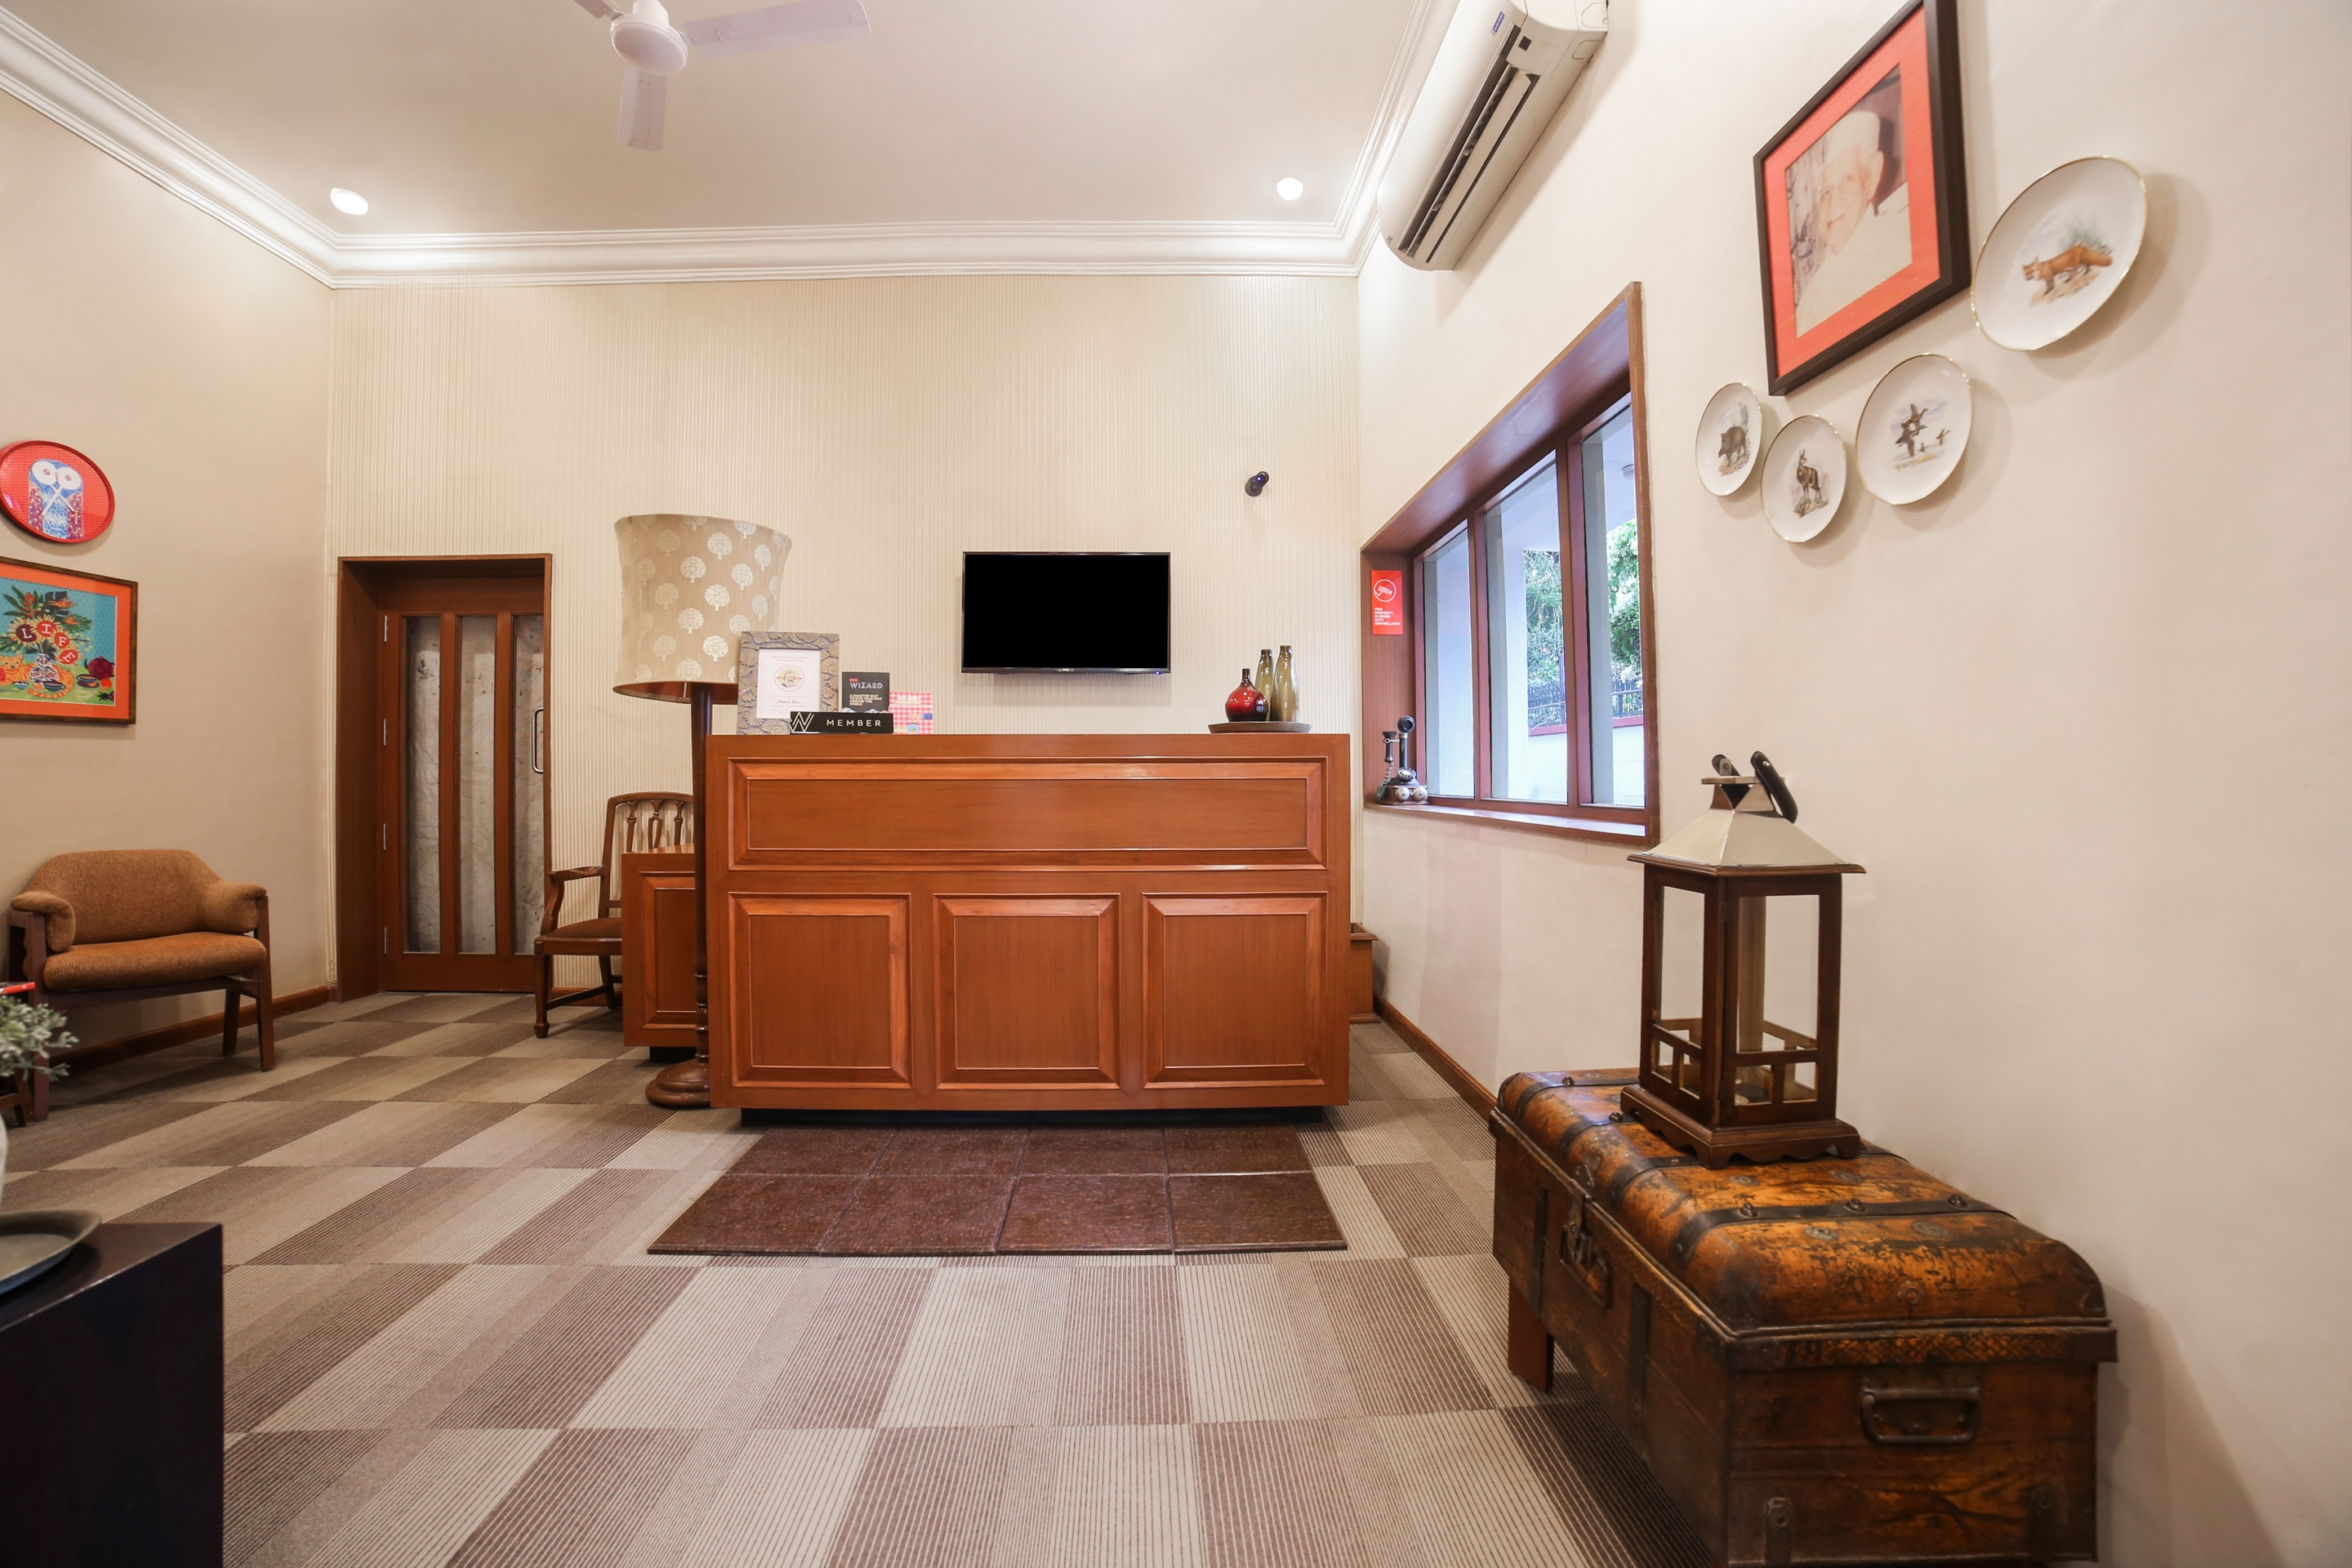 Hotel Gallarey Capital O 10953 Dayal Lodge - A Boutique Hotel